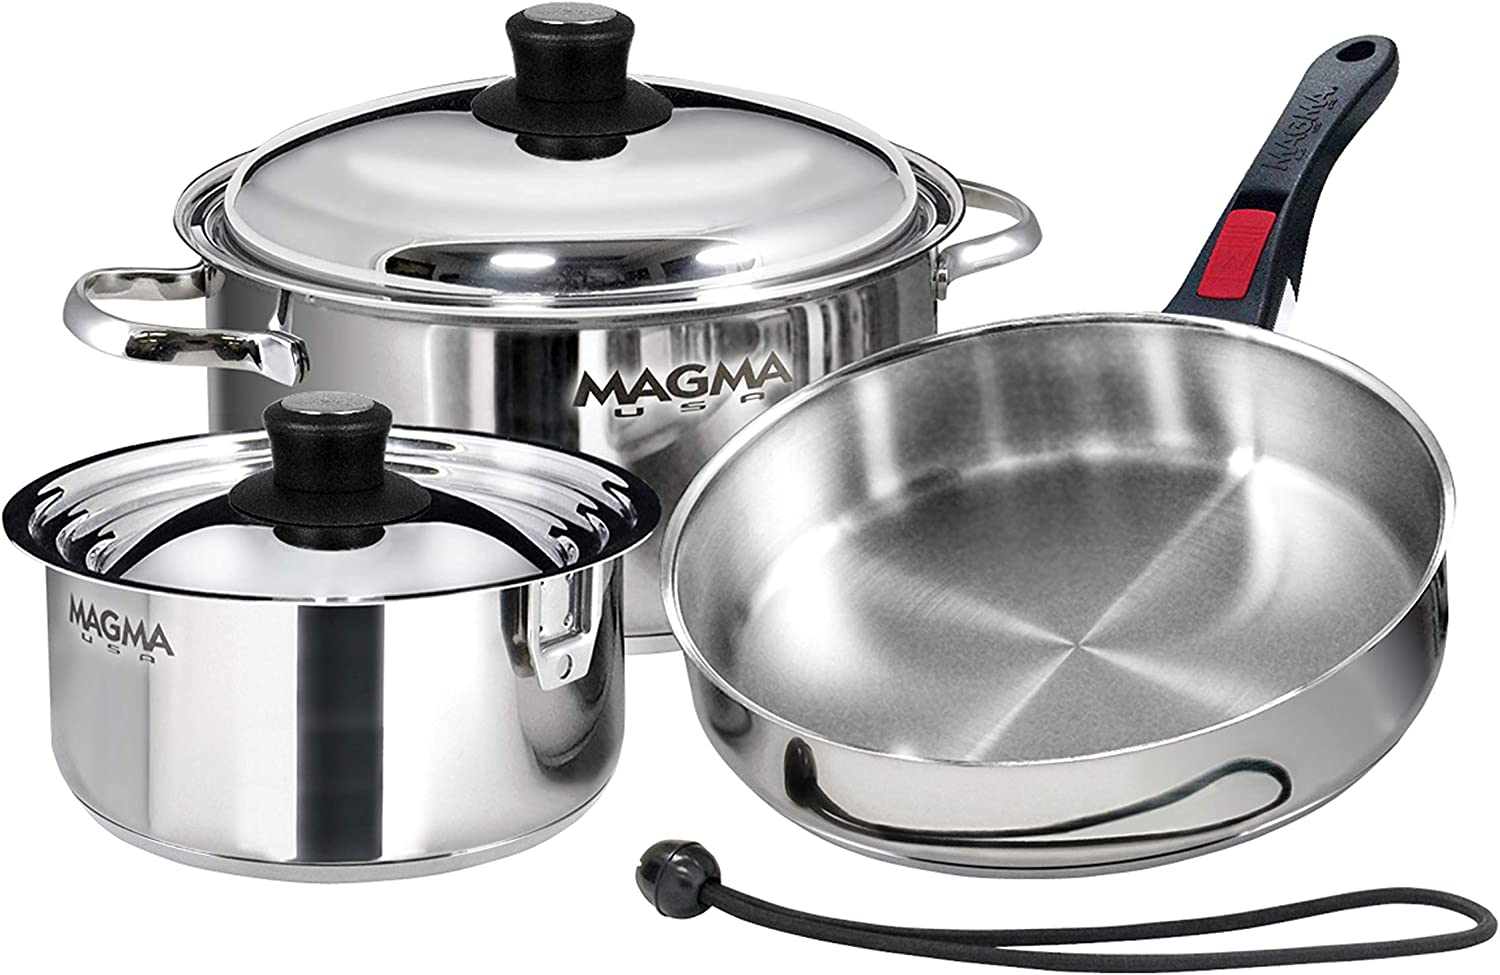 Magma Products, A10-362-IND 7 Piece Induction Cook-Top Gourmet Nesting Stainless Steel Cookware Set